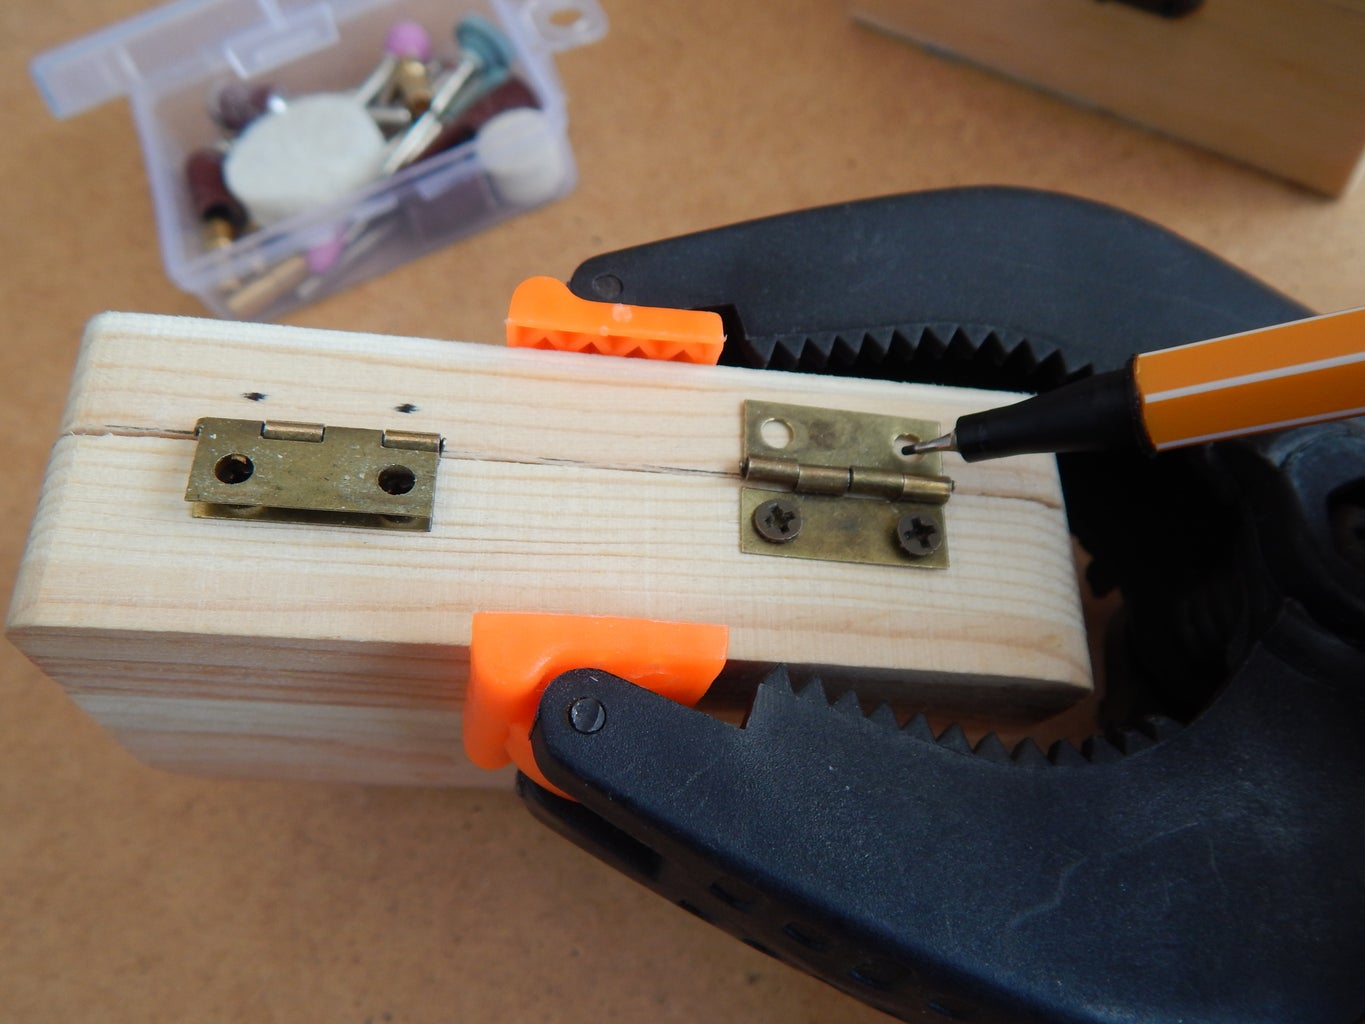 Marking the Screw Holes